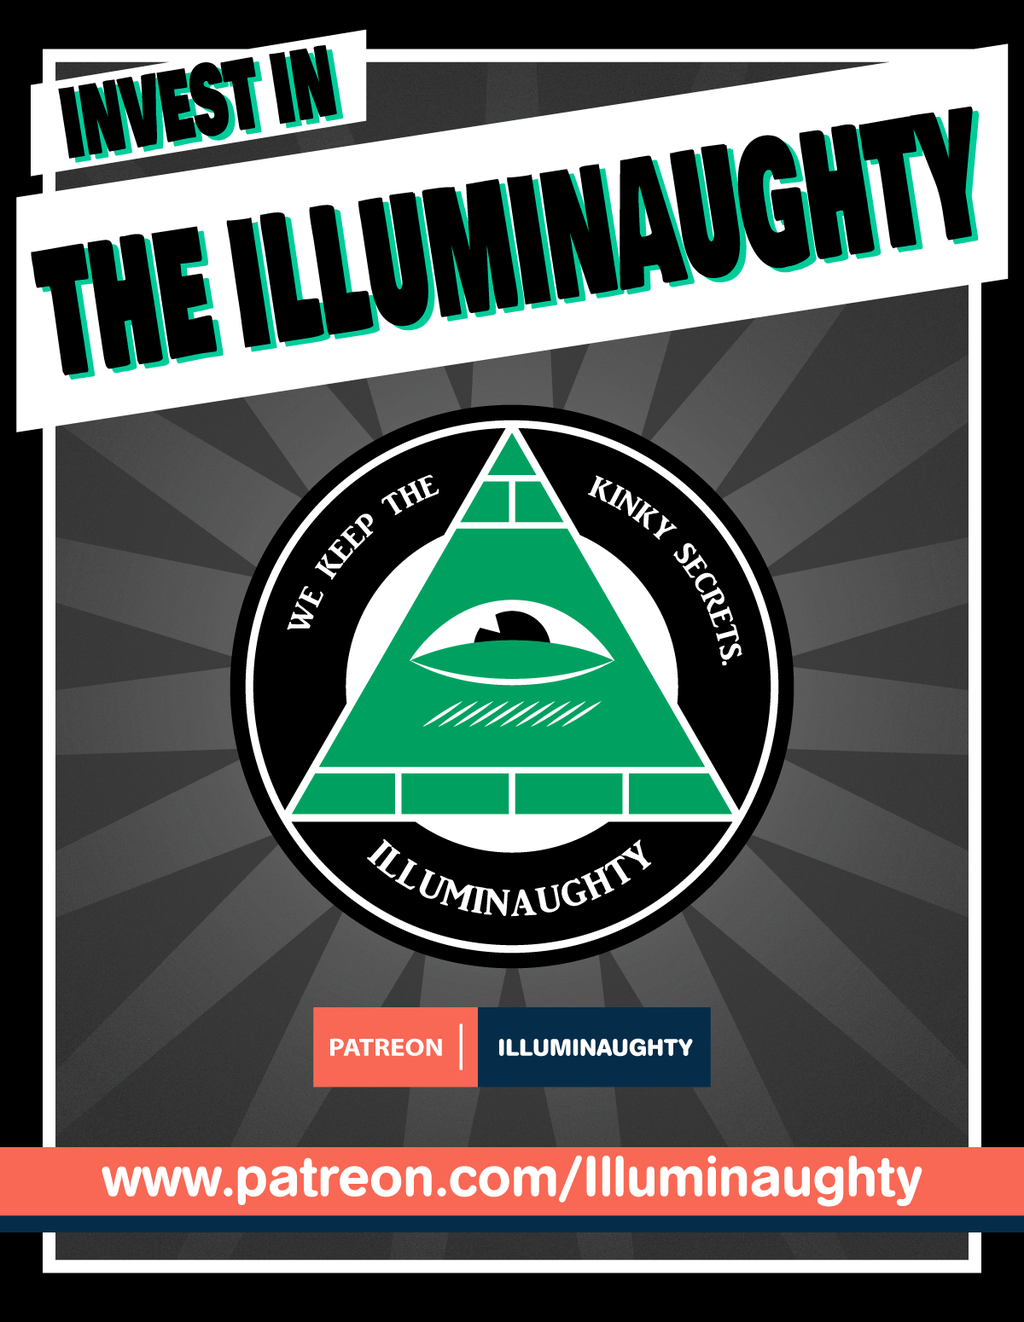 Most recent image: Illuminaughty Patreon Launched Call To Action